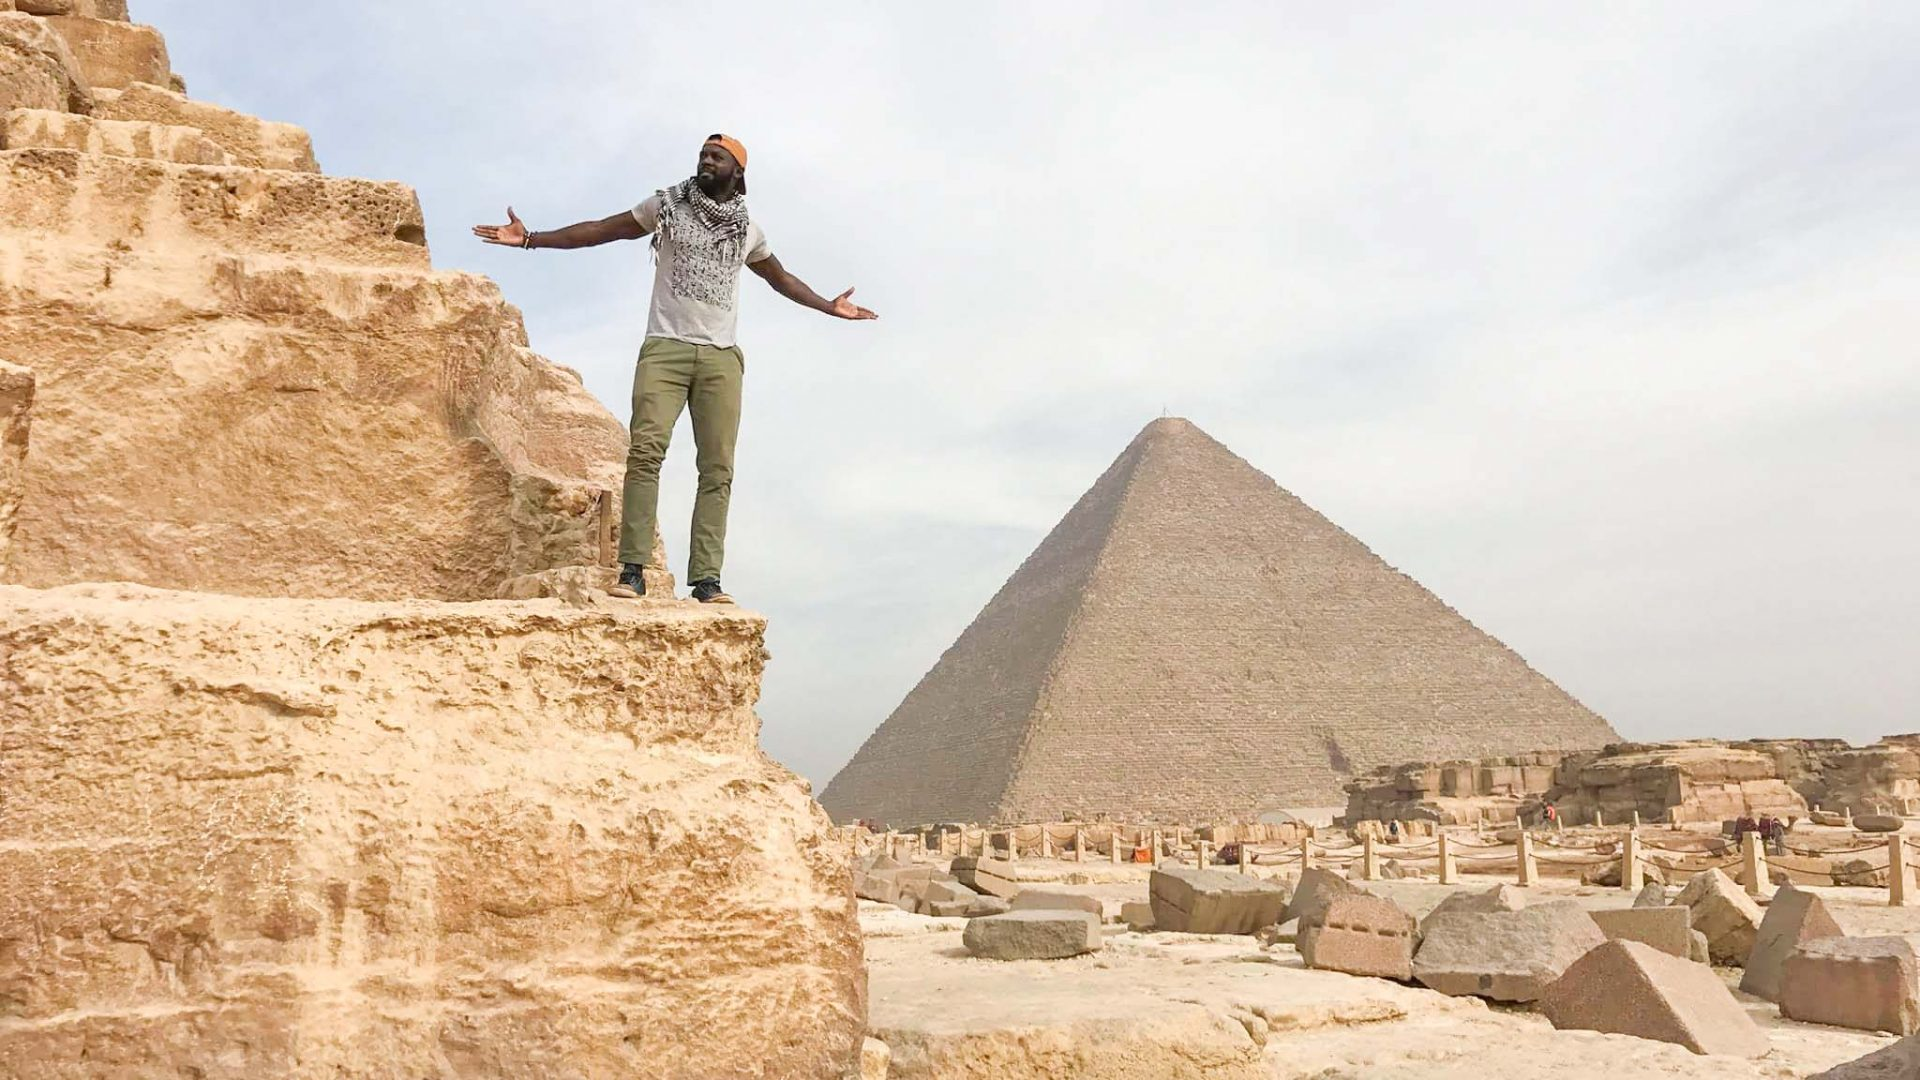 Mario Rigby at the Giza Pyramids in Egypt where he finished his walk across Africa.